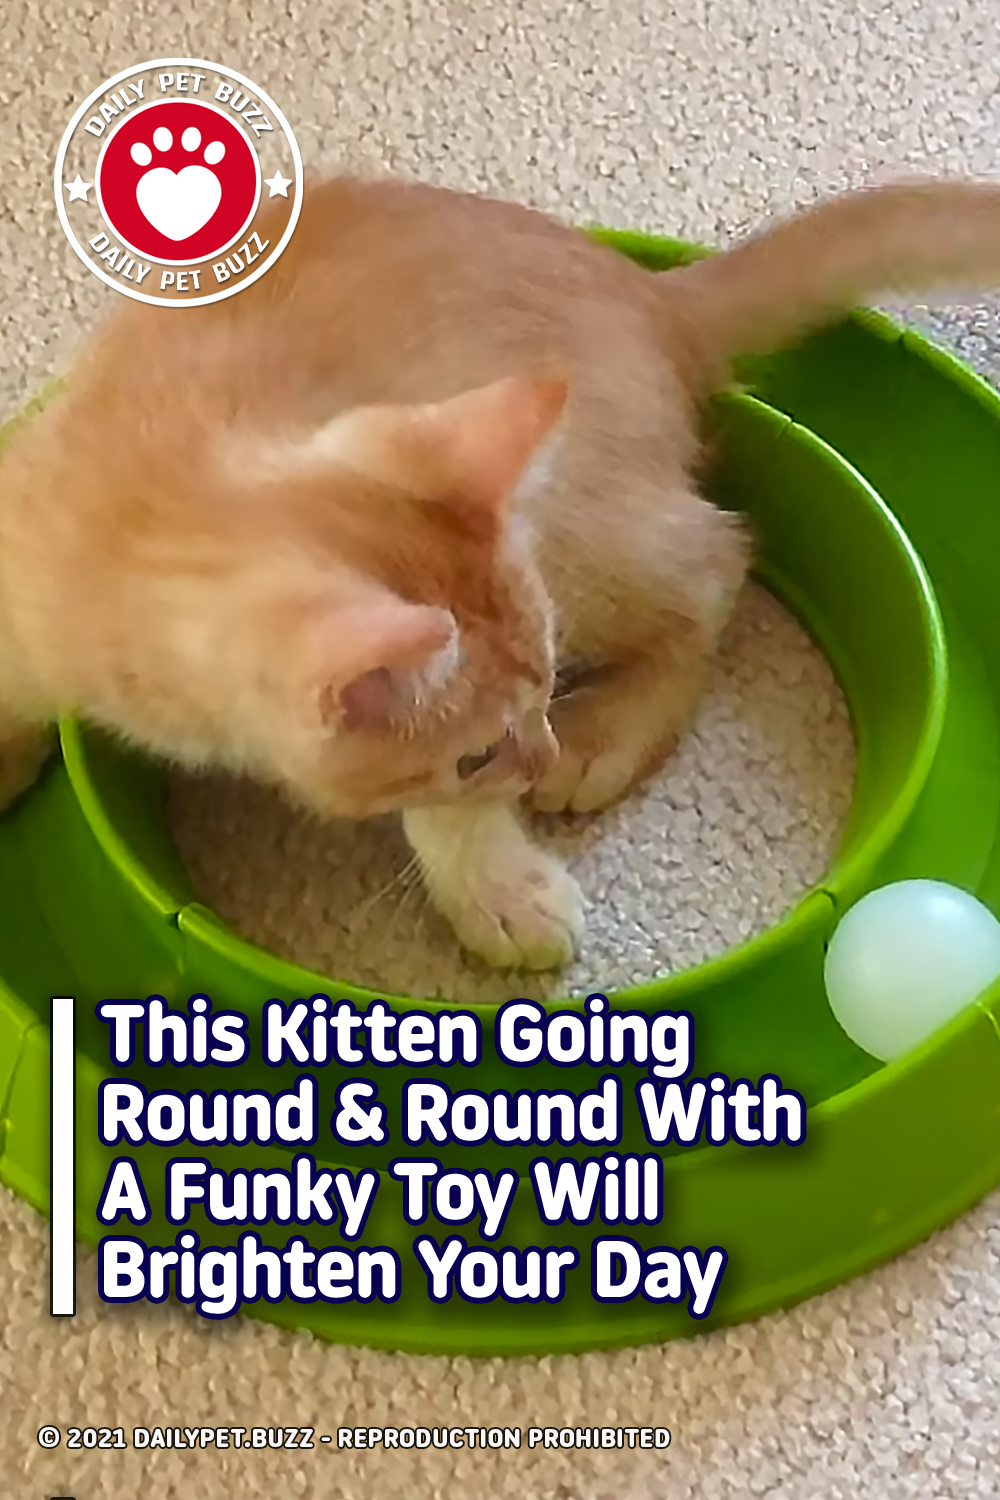 This Kitten Going Round & Round With A Funky Toy Will Brighten Your Day